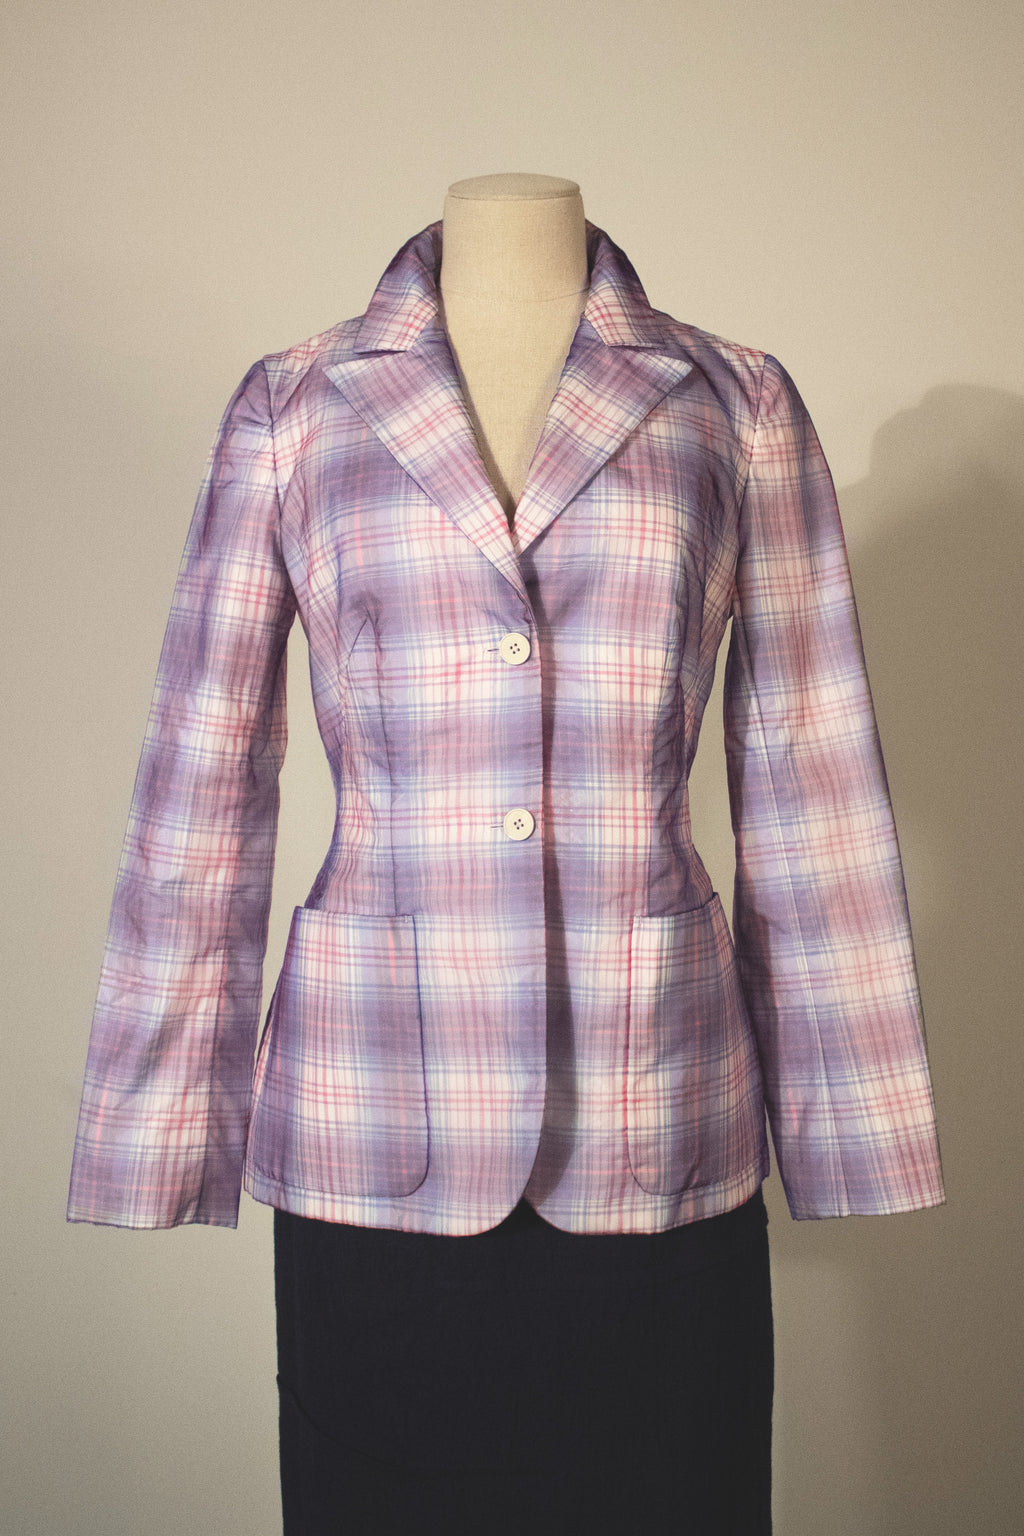 Raf Simons for Jil Sander rainbow plaid nylon blazer